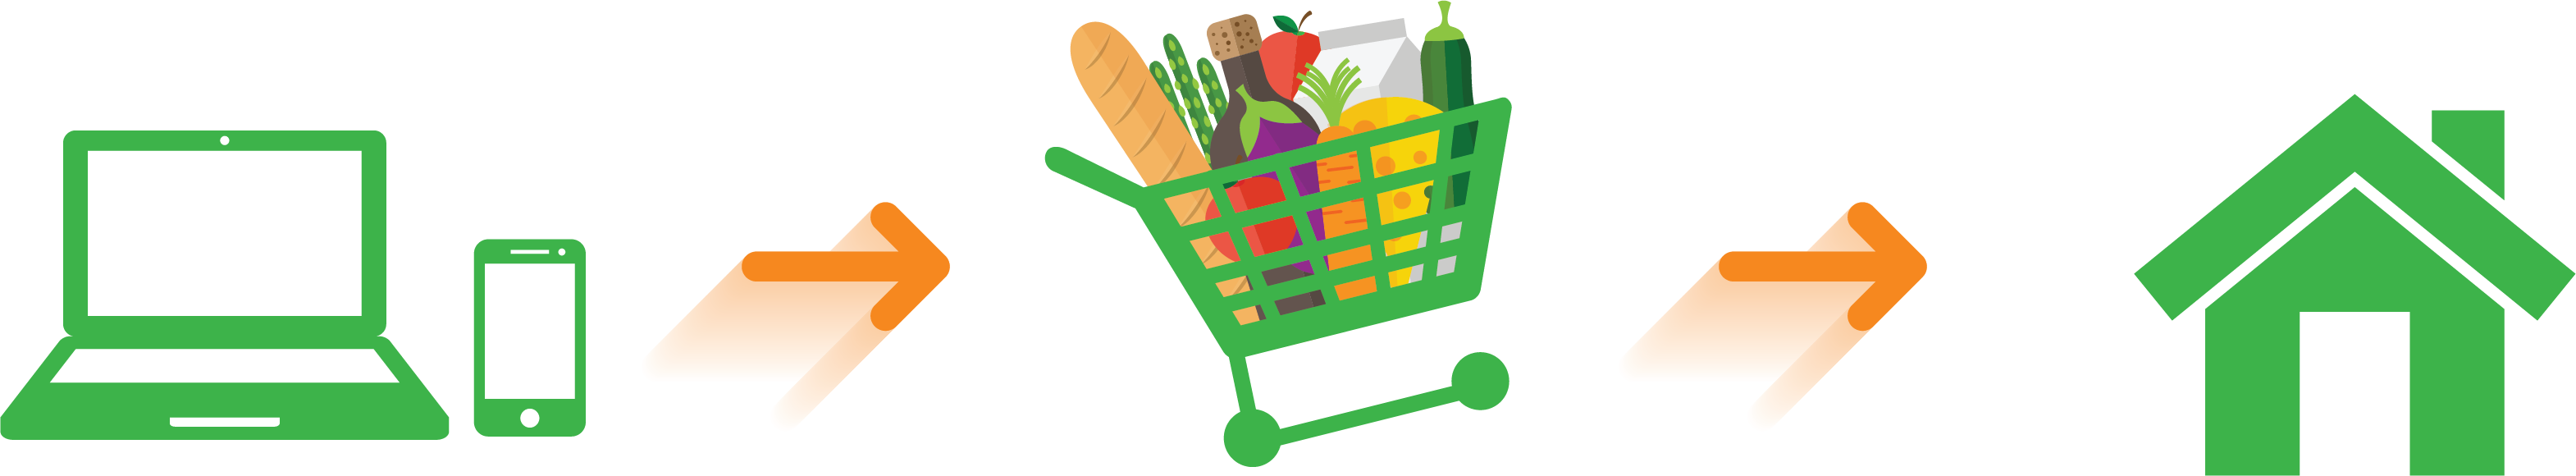 Groceries straight to your. Grocery clipart village shop